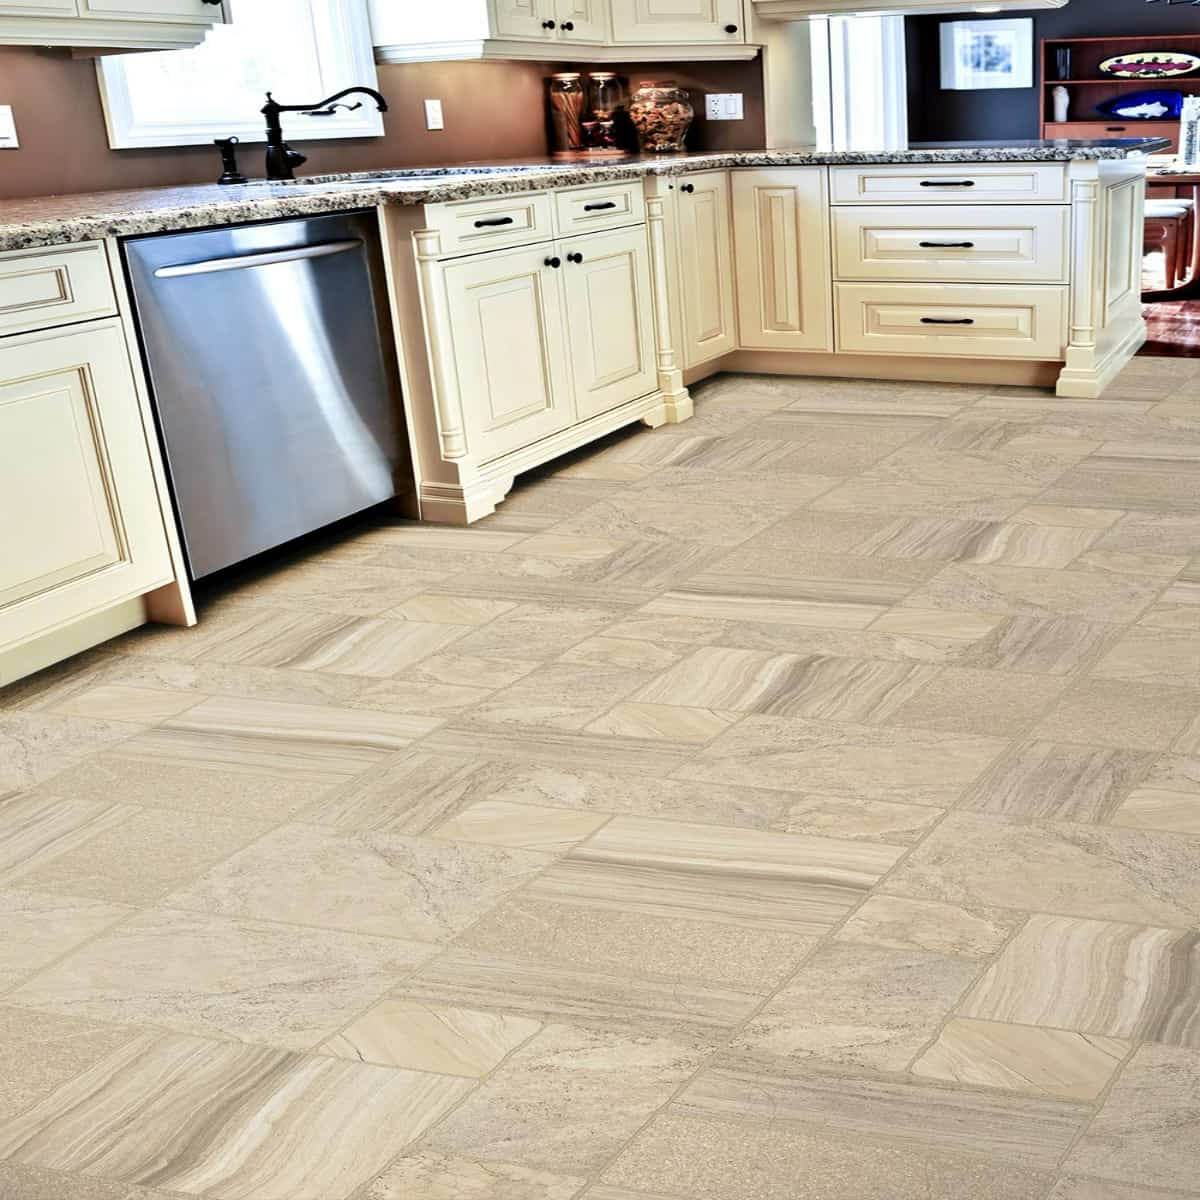 Kitchen floor tiles right price tiles mixconceptsavia webpic dailygadgetfo Image collections